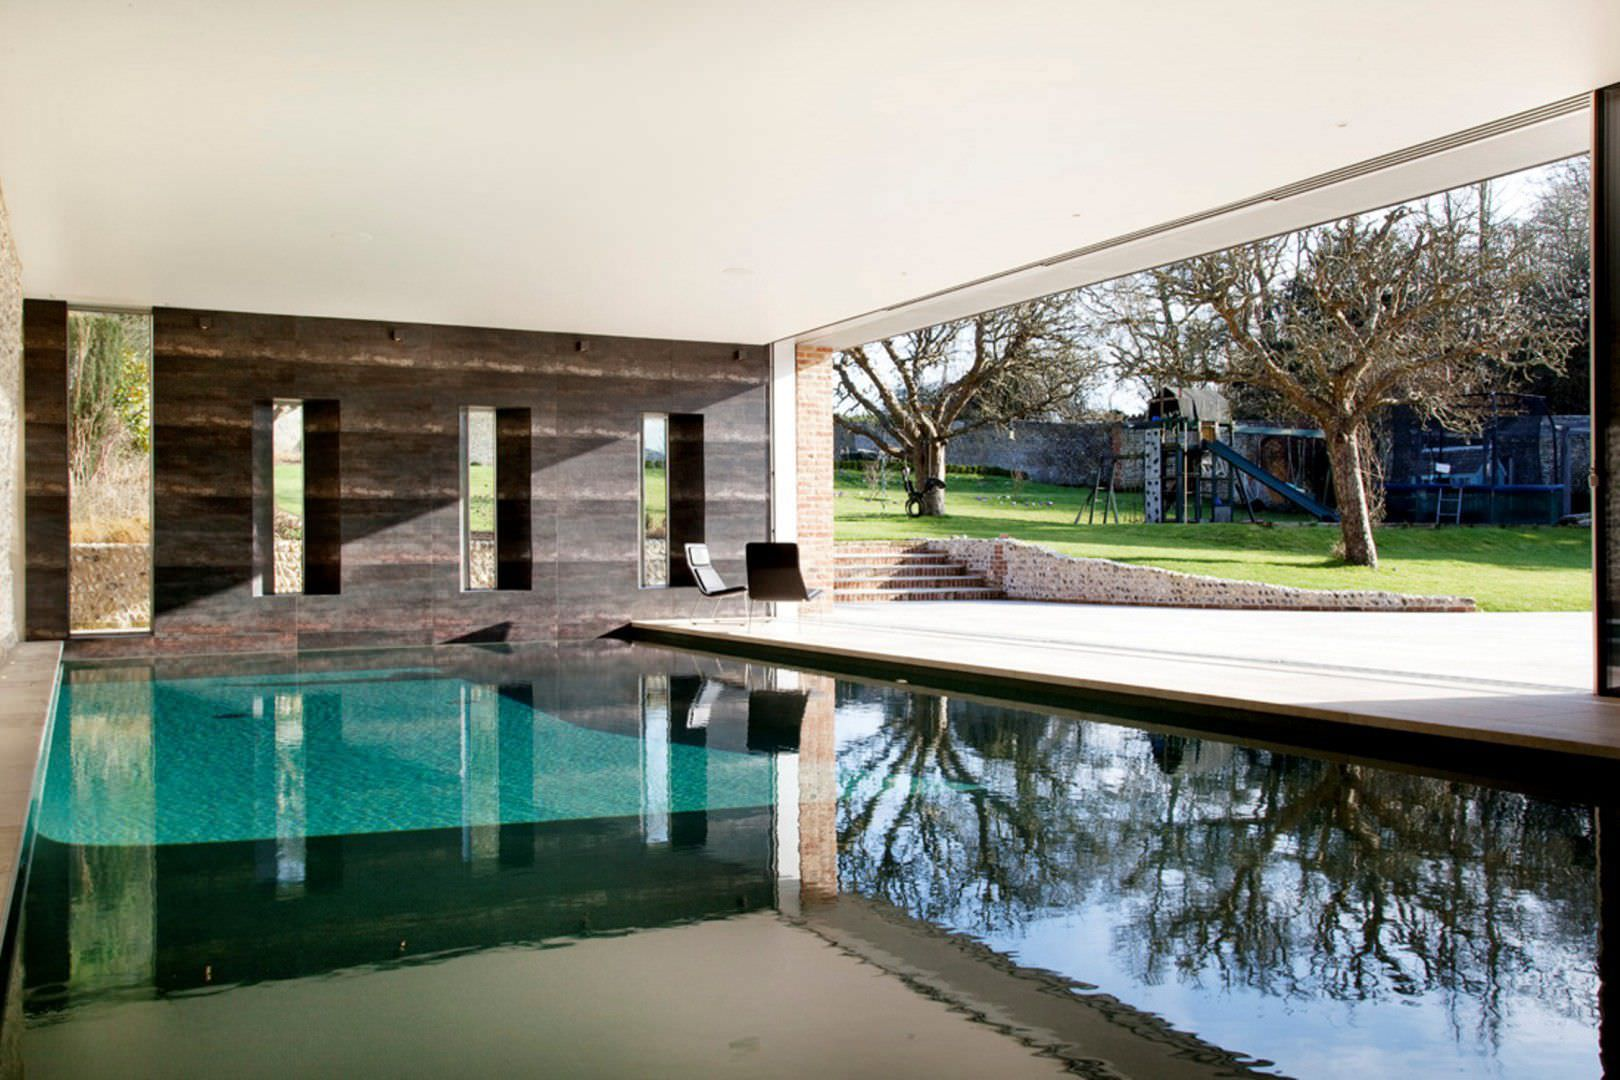 Garden With Swimming Pool in-ground swimming pool - east sussex - guncast swimming